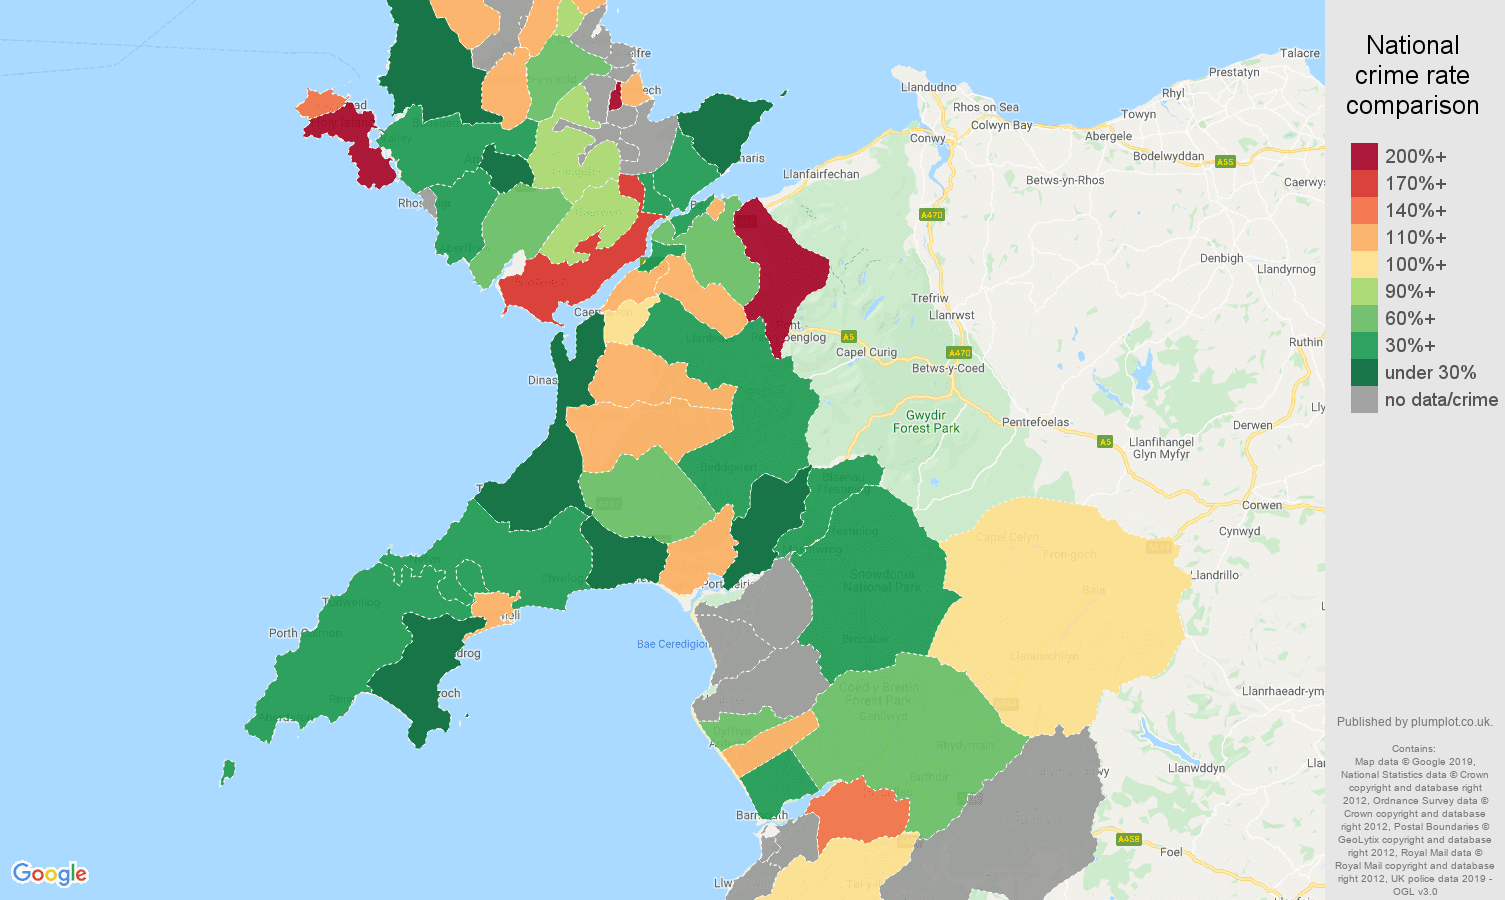 Gwynedd other crime rate comparison map